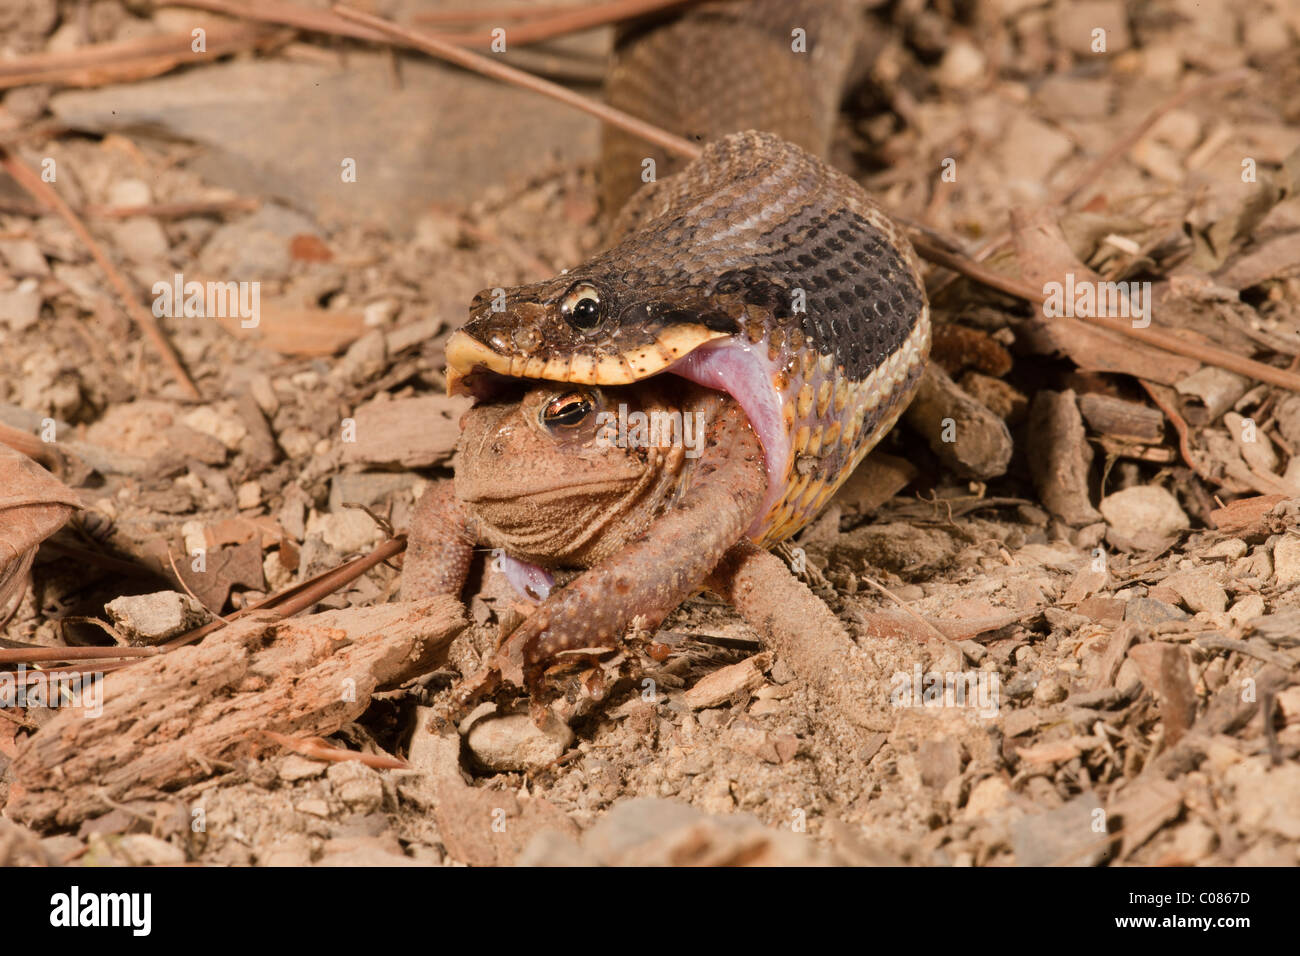 Eastern Hognose Snake eating an American Toad, USA - Stock Image